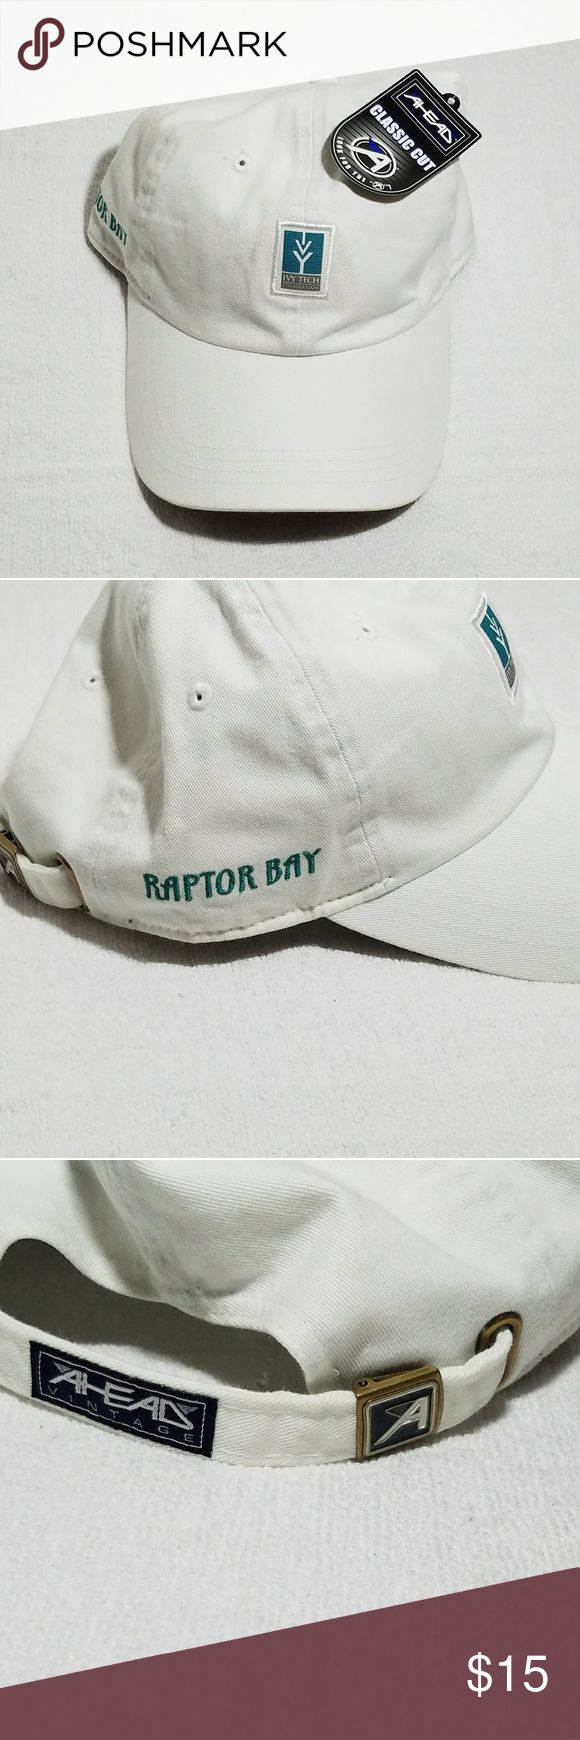 White Ahead Classic Cut Ivy Tech Baseball Cap This pre-owned Ivy Tech Foundation adjustable strapback baseball cap was never worn like new condition. Enjoy wearing this hard to find cotton material quality hat perfect for college students wear in time for the great weather this year or to give as a gift. Ahead  Accessories Hats